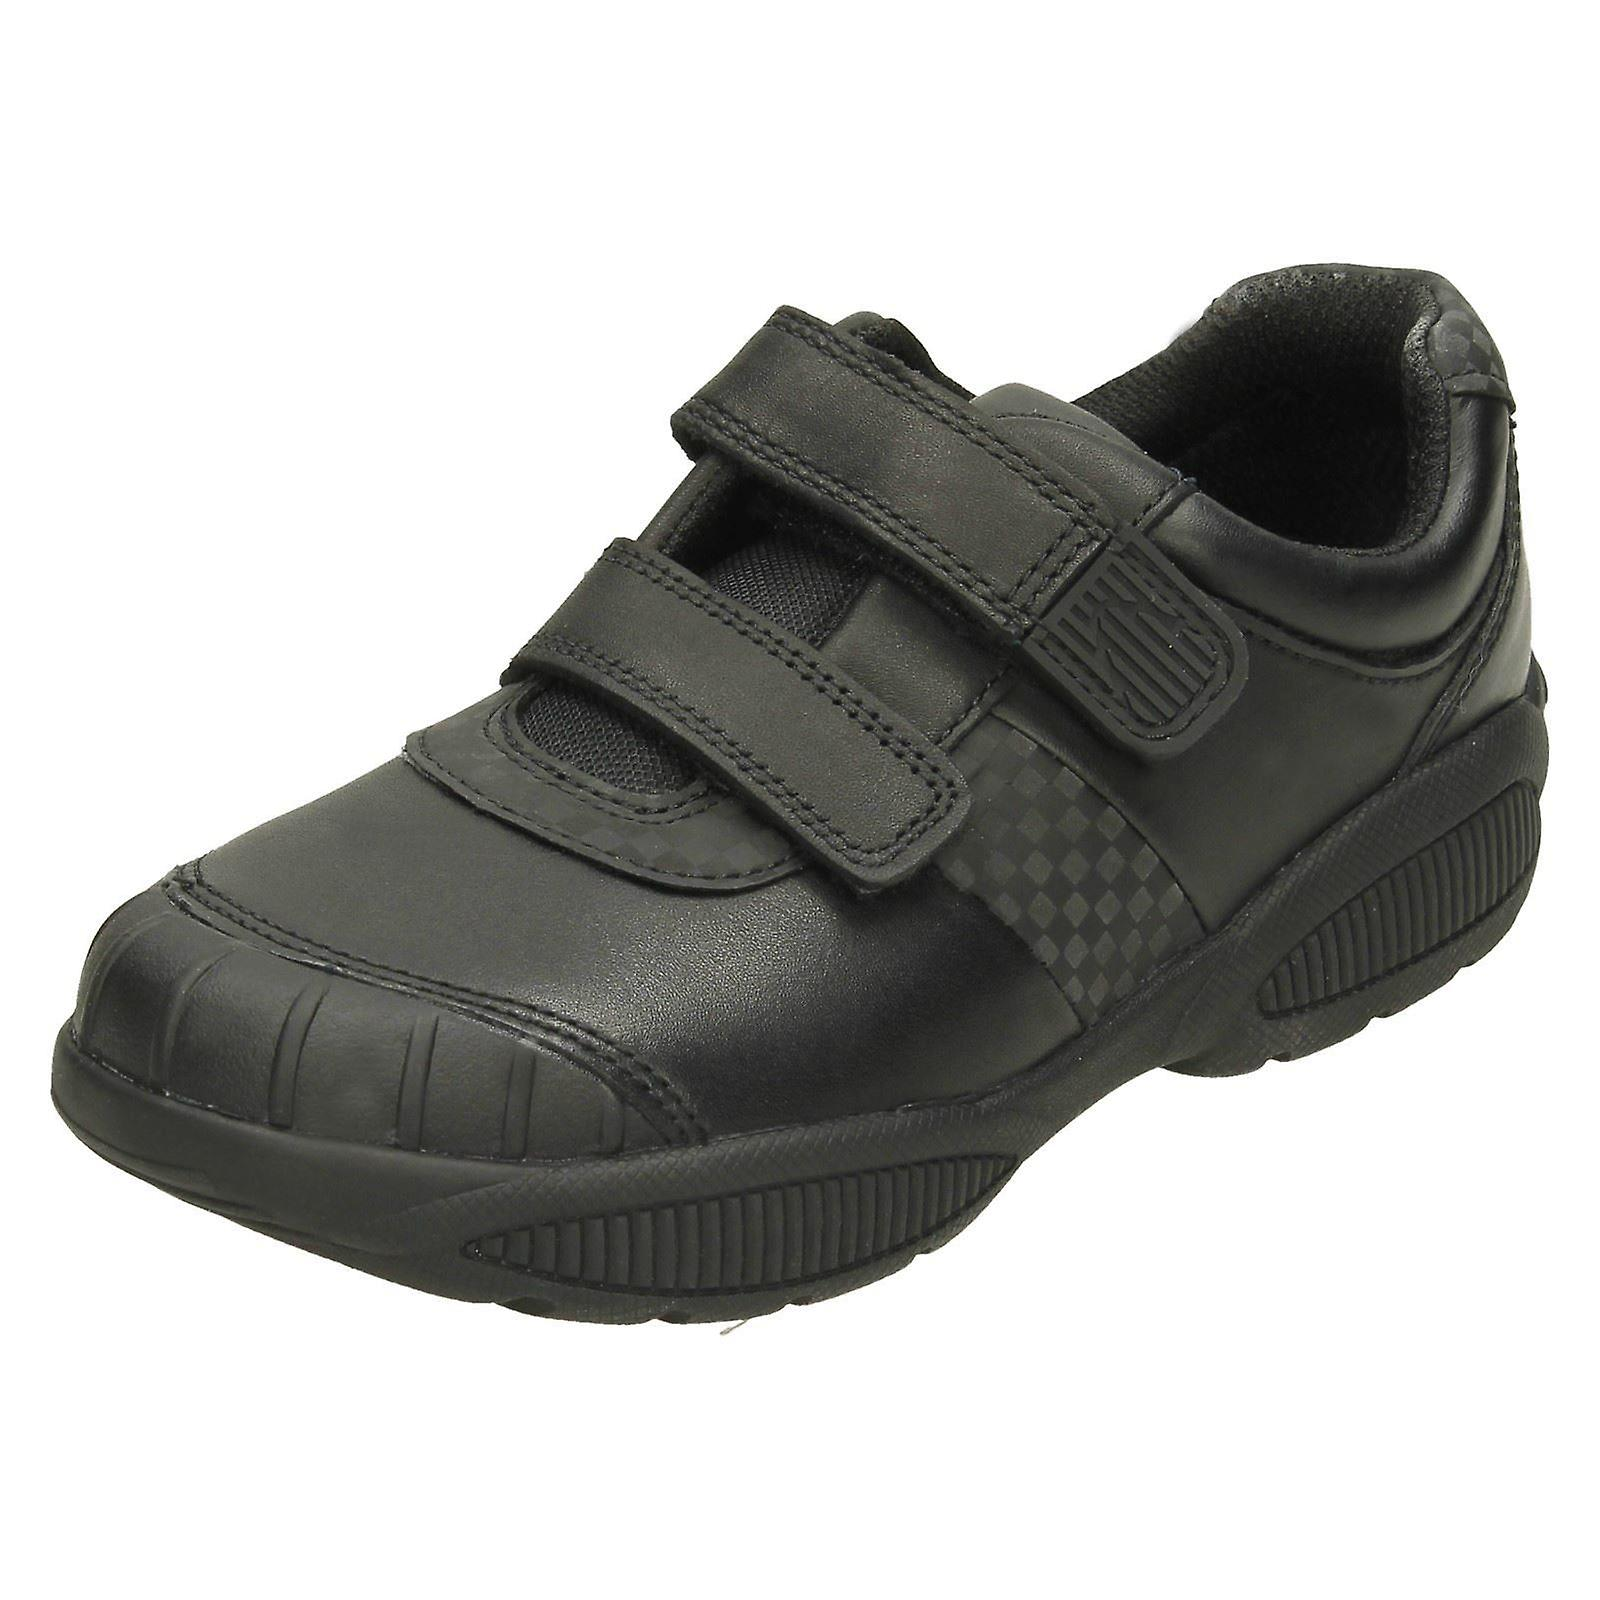 Boys Clarks Scuff Protection Formal Shoes Jonas Glo - Black Leather - UK Size 8G - EU Size 255 - US Size 85W